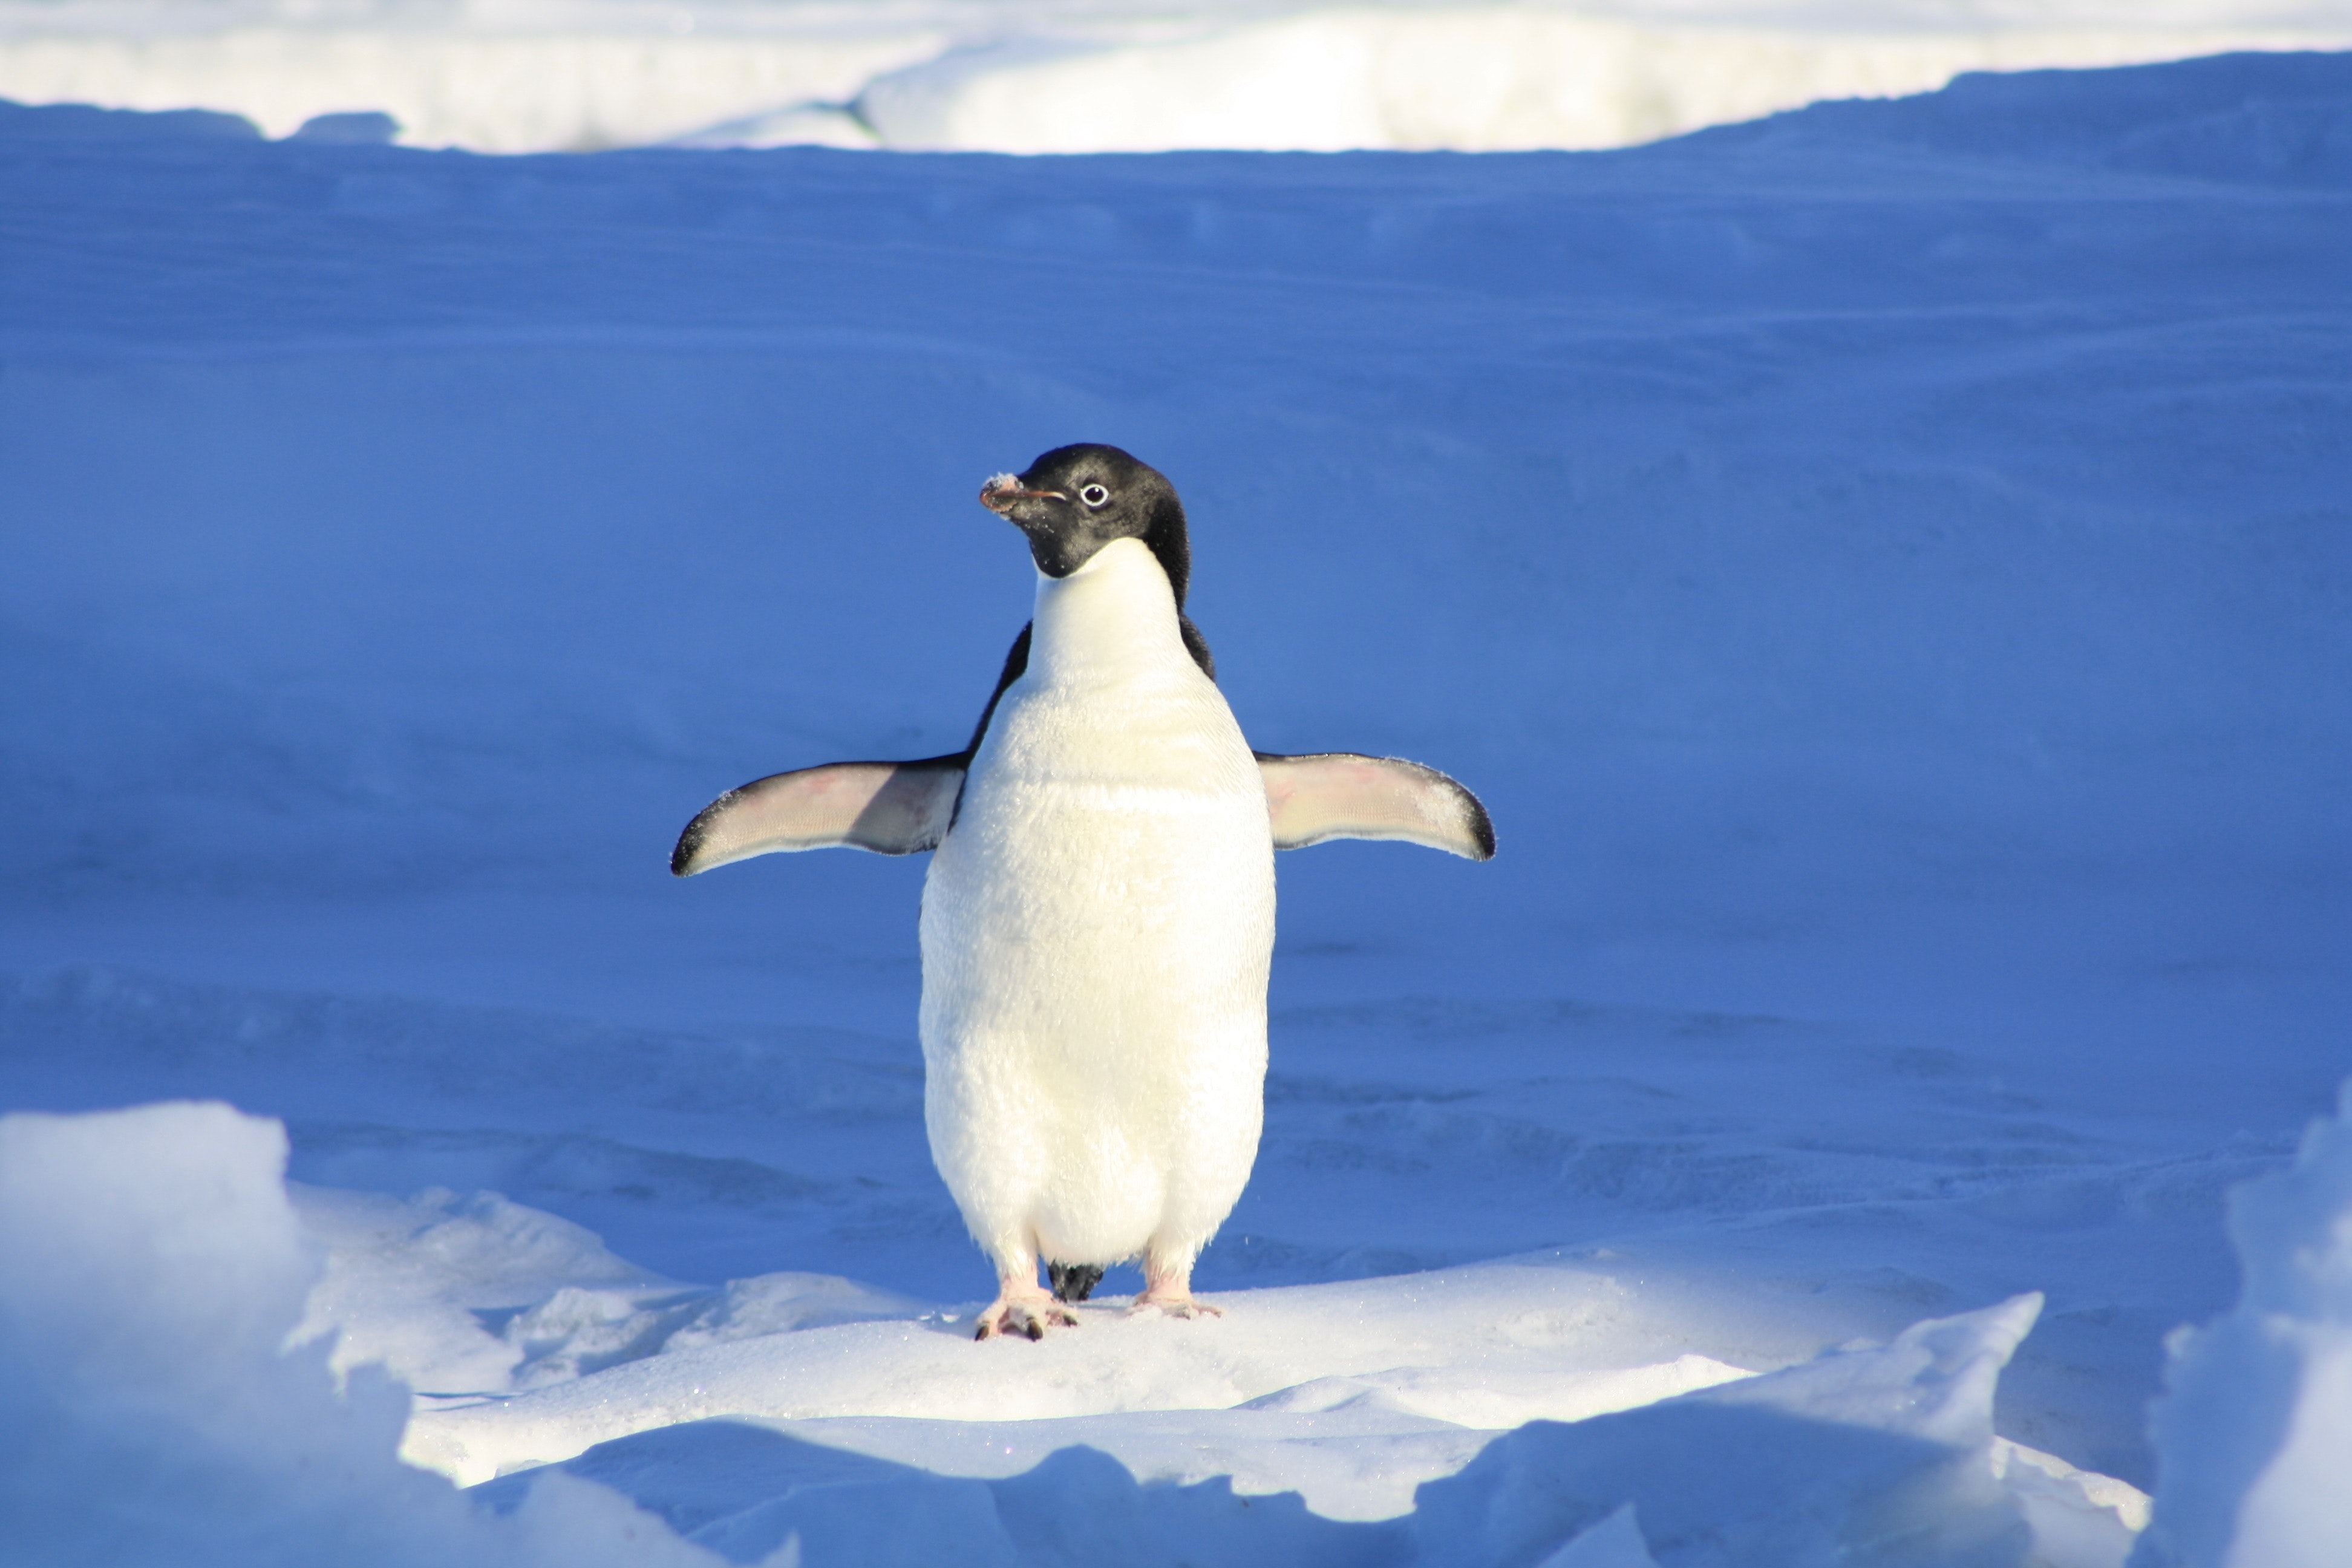 close-up-photography-of-penguin-on-snow-86405.jpg